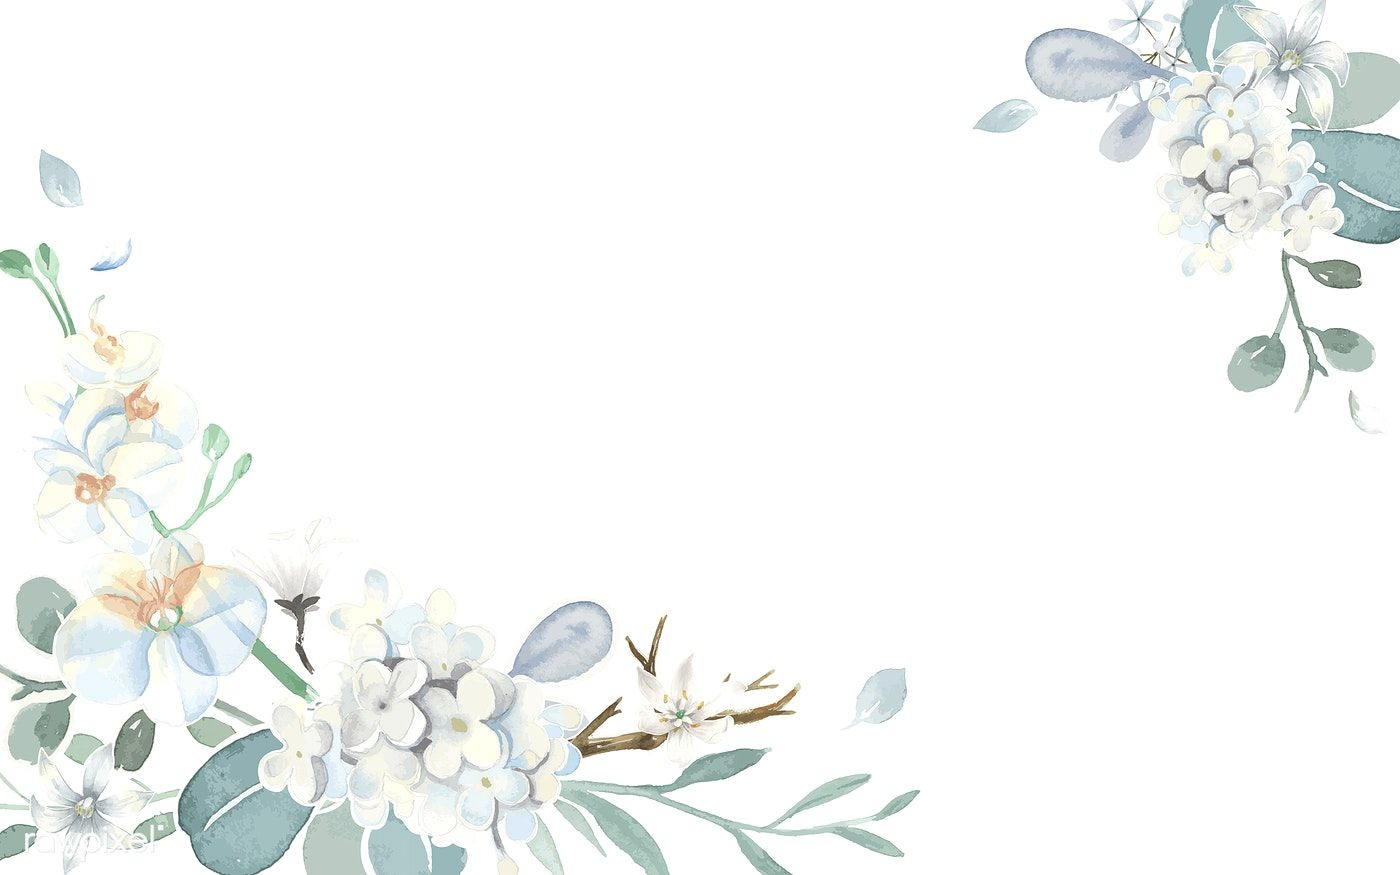 Invitation Card With A Light Blue Theme Free Image By Rawpixel